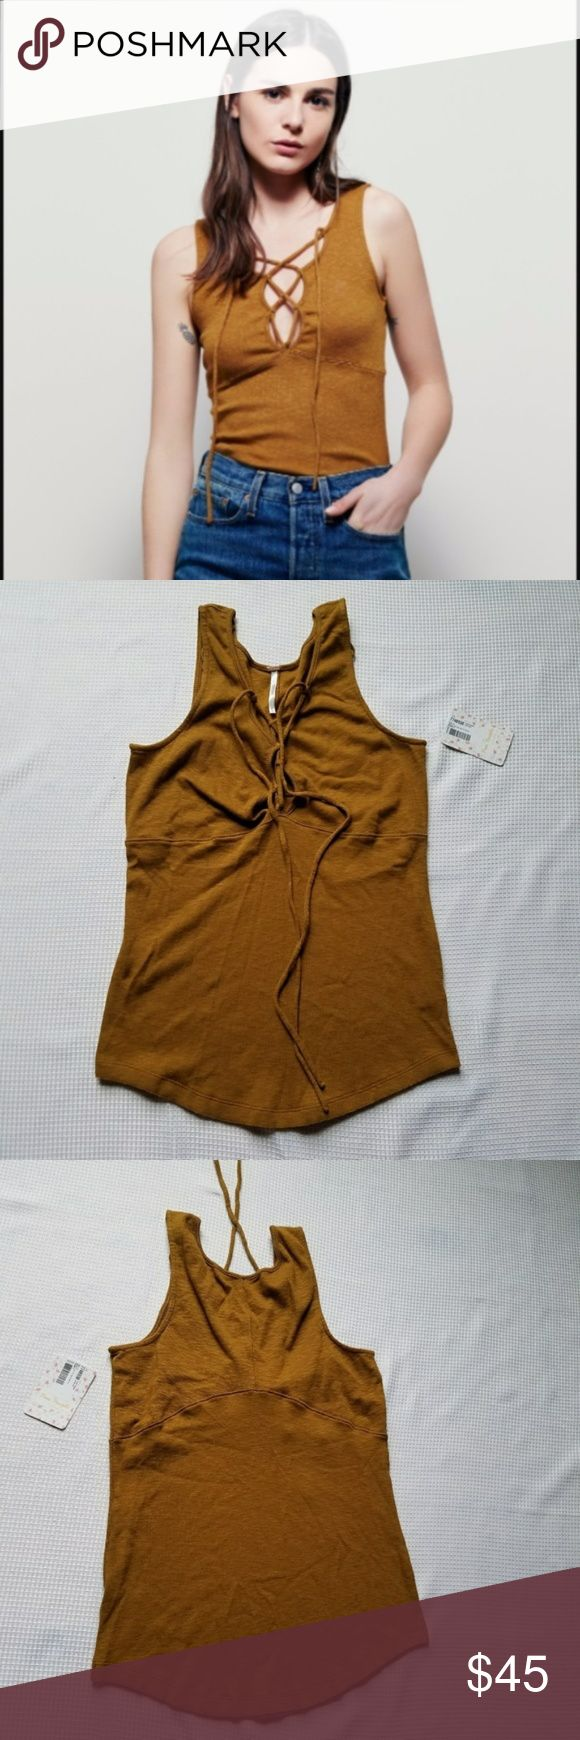 """Free People Emmy Lou Bronze Top M Women's tank. Made with a double layered rib stretch fabric. Deep V neck with lace up detail. Seaming along the bust. Rounded hem. Snug fit. Sleevelesss. Armpit-to-armpit: 15"""". Shoulder to hem length: 23"""". 58% cotton, 38% modal, 4% spandex . Machine wash cold, dry flat. boho bohemian criss cross tie gypsy hippy hippie casual desert western southwestern Free People Tops Tank Tops"""